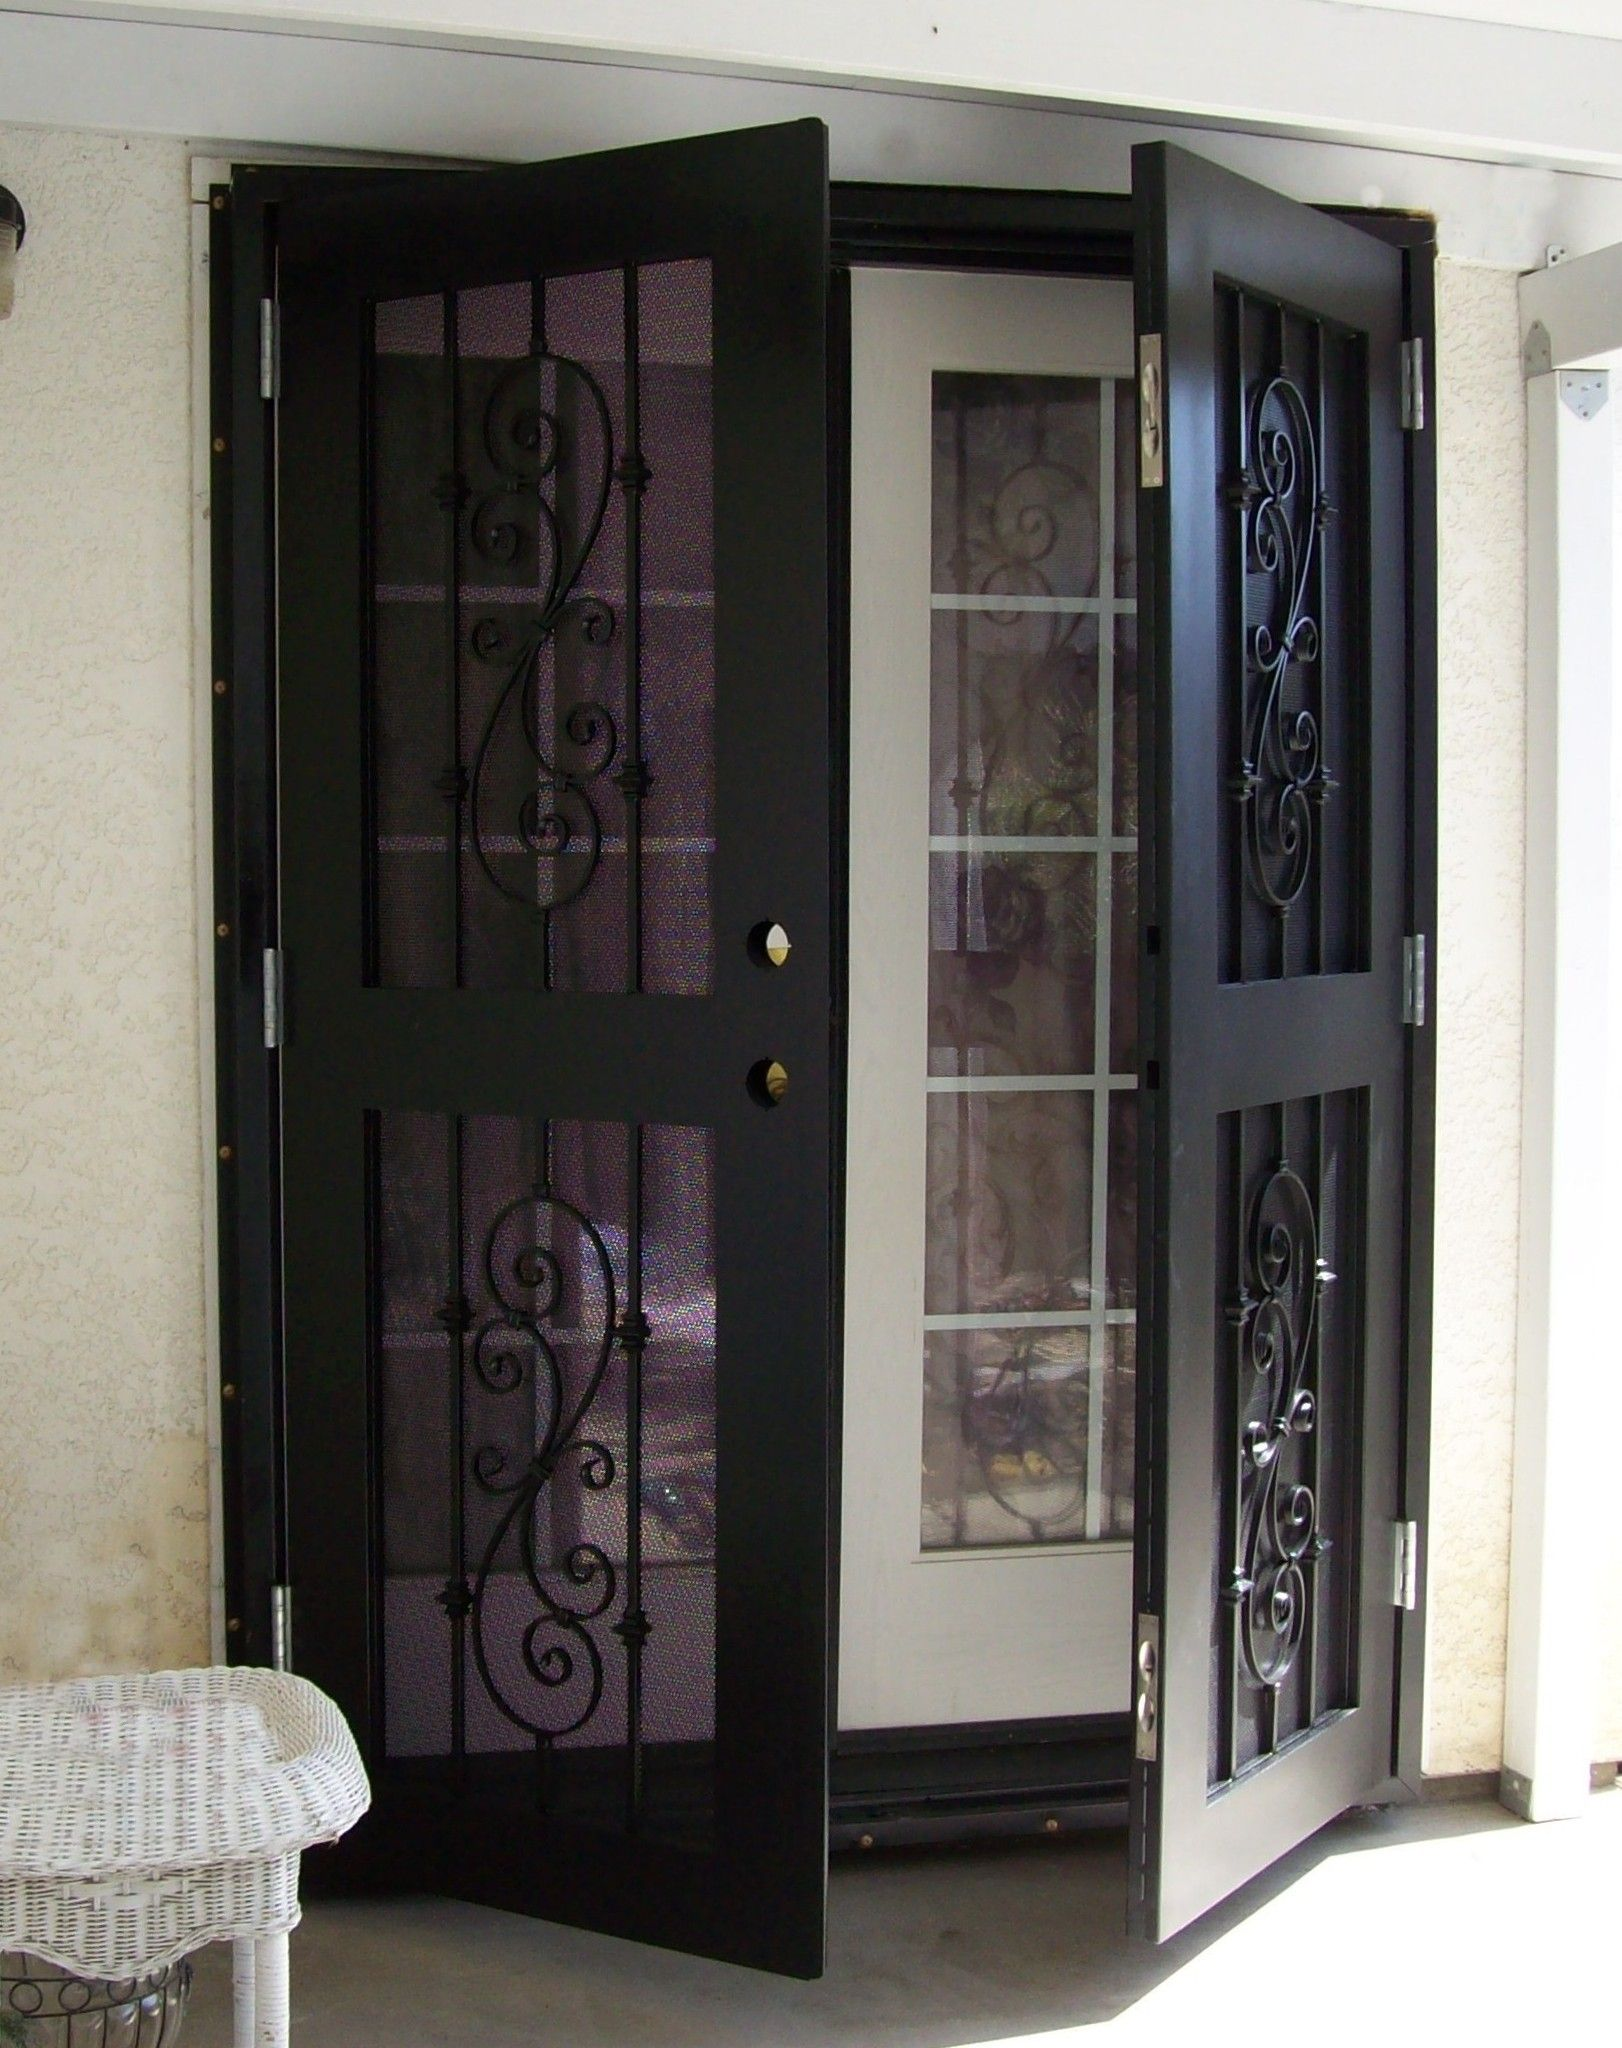 Nx stage security sliding doors french doors window guards my nx stage security sliding doors french doors window guards vtopaller Choice Image